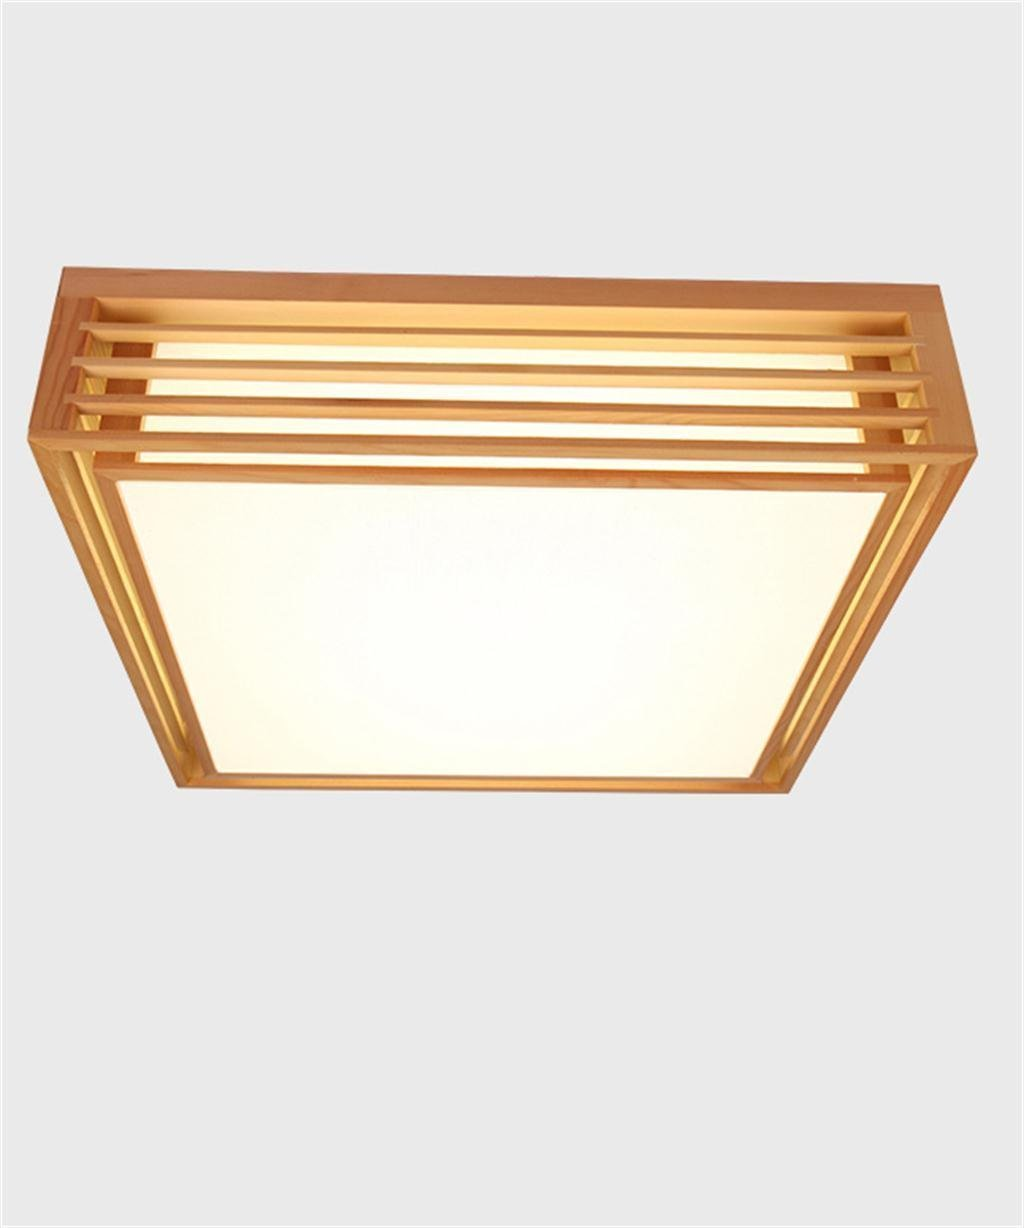 DIDIDD Ceiling light- nordic minimalist creative chinese wood wooden square ceiling light living room bedroom ceiling light (size optional) --home warm ceiling lamp